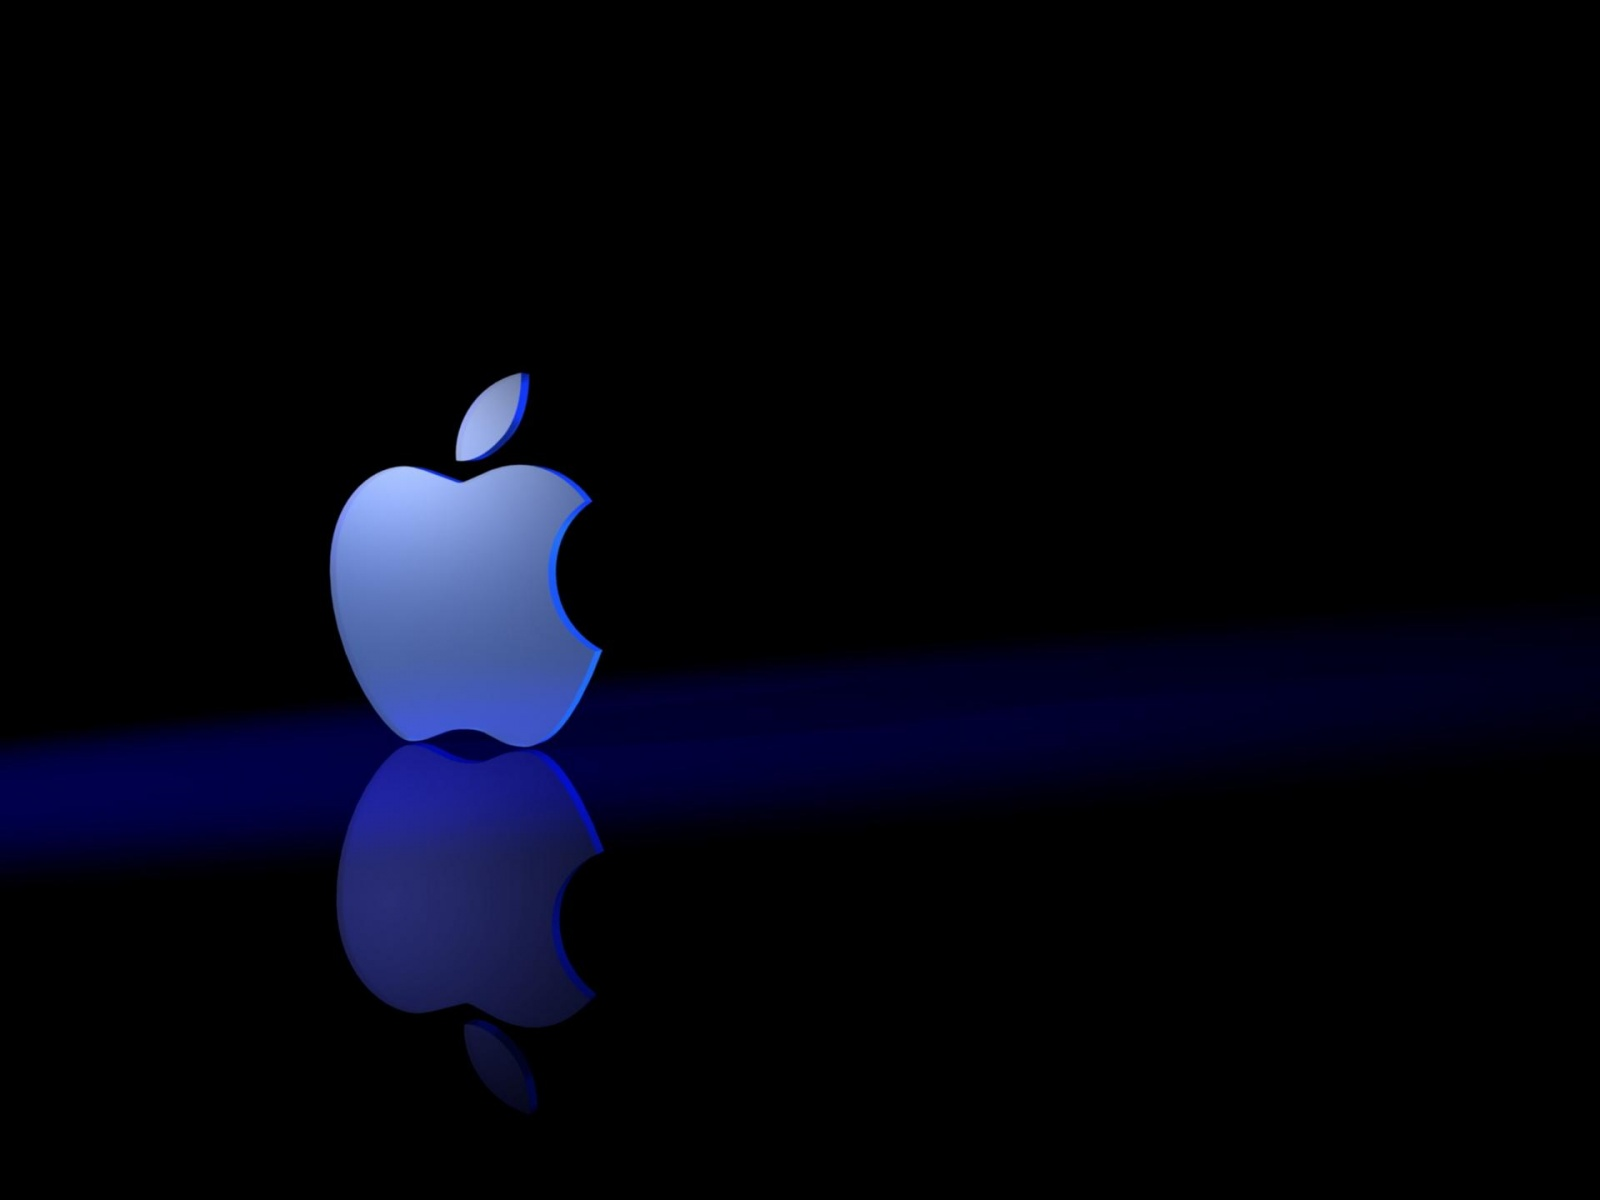 apple 3dark wallpapers 8642 1600x1200